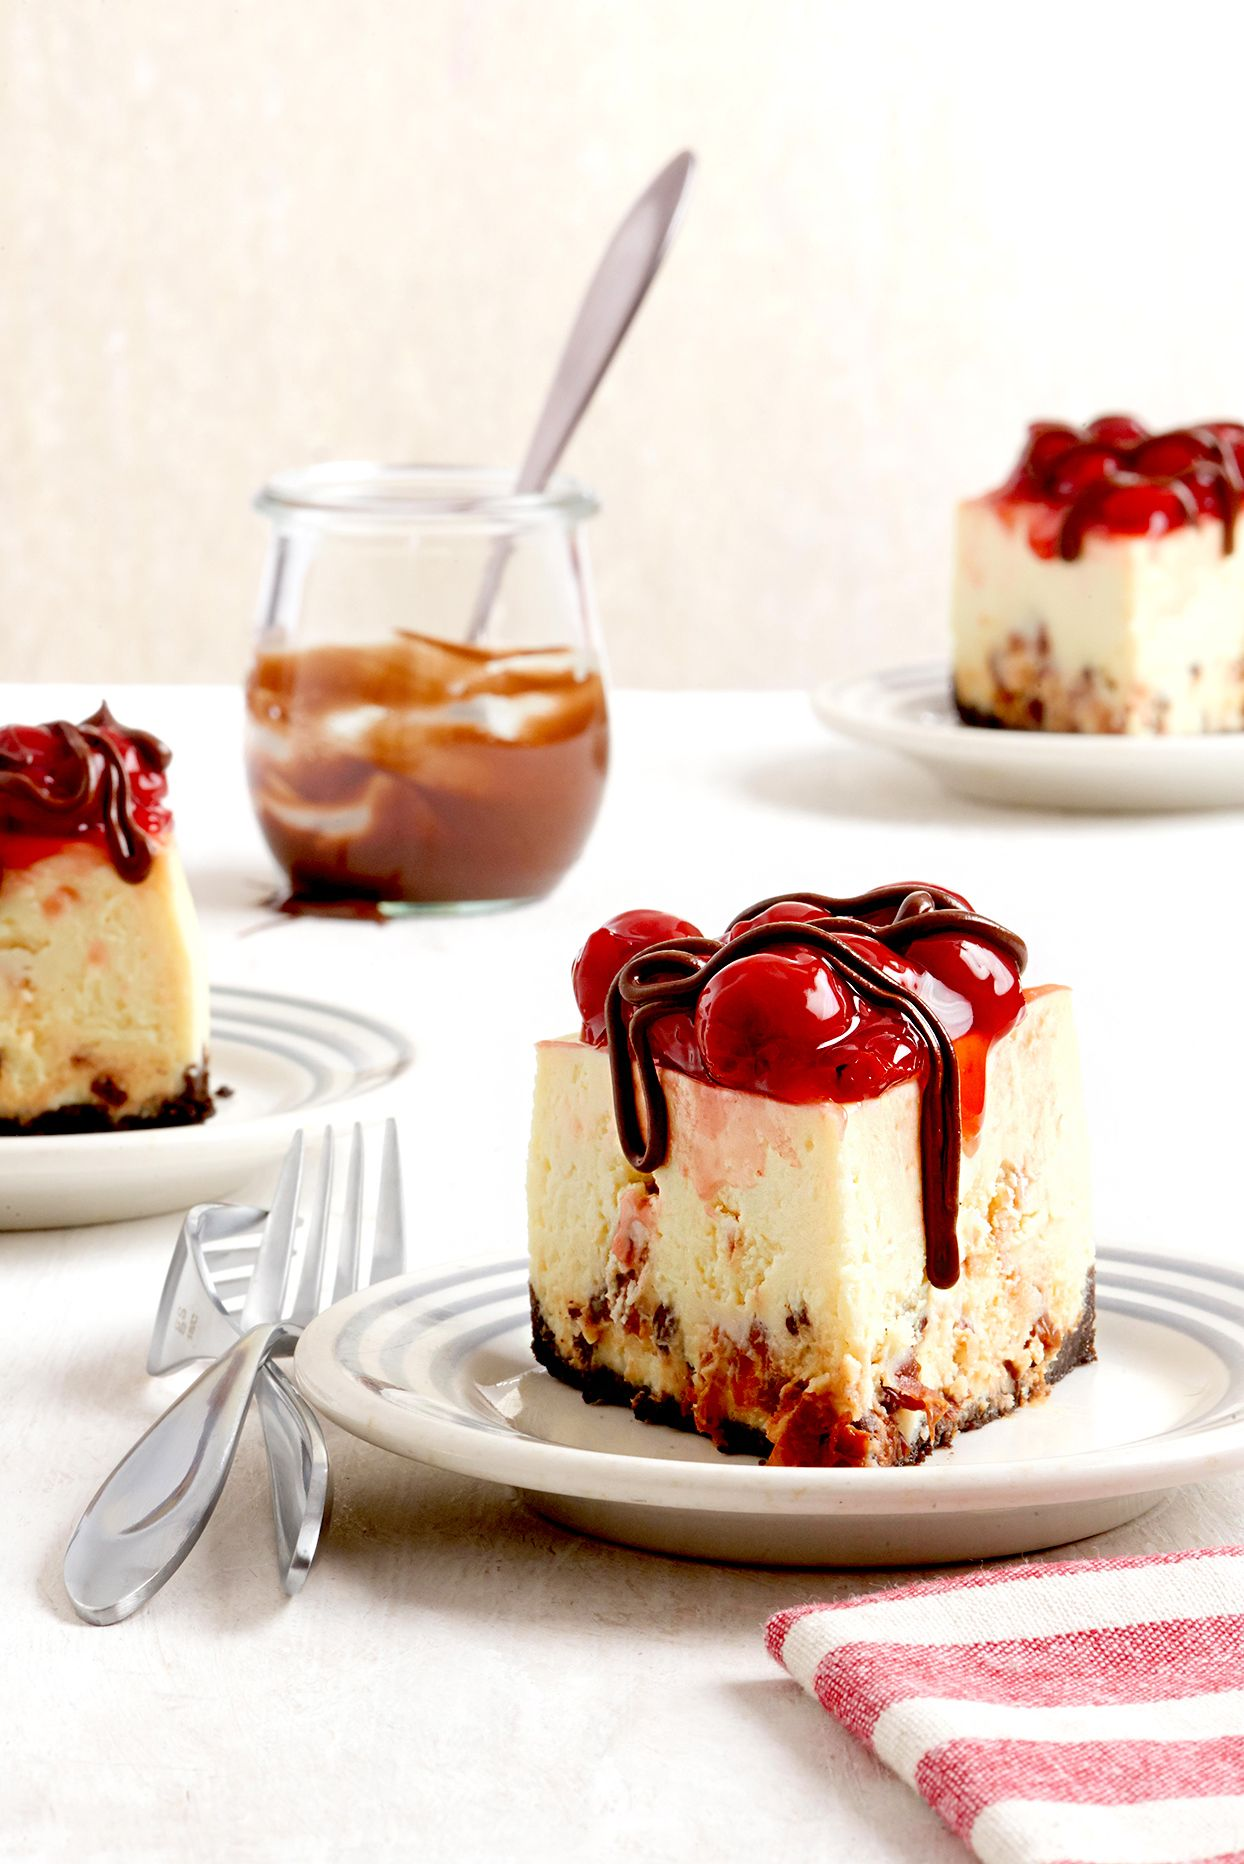 be2b9f9d26a36f69f88fc2b83348b184 - Better Homes And Gardens Cheesecake Recipe